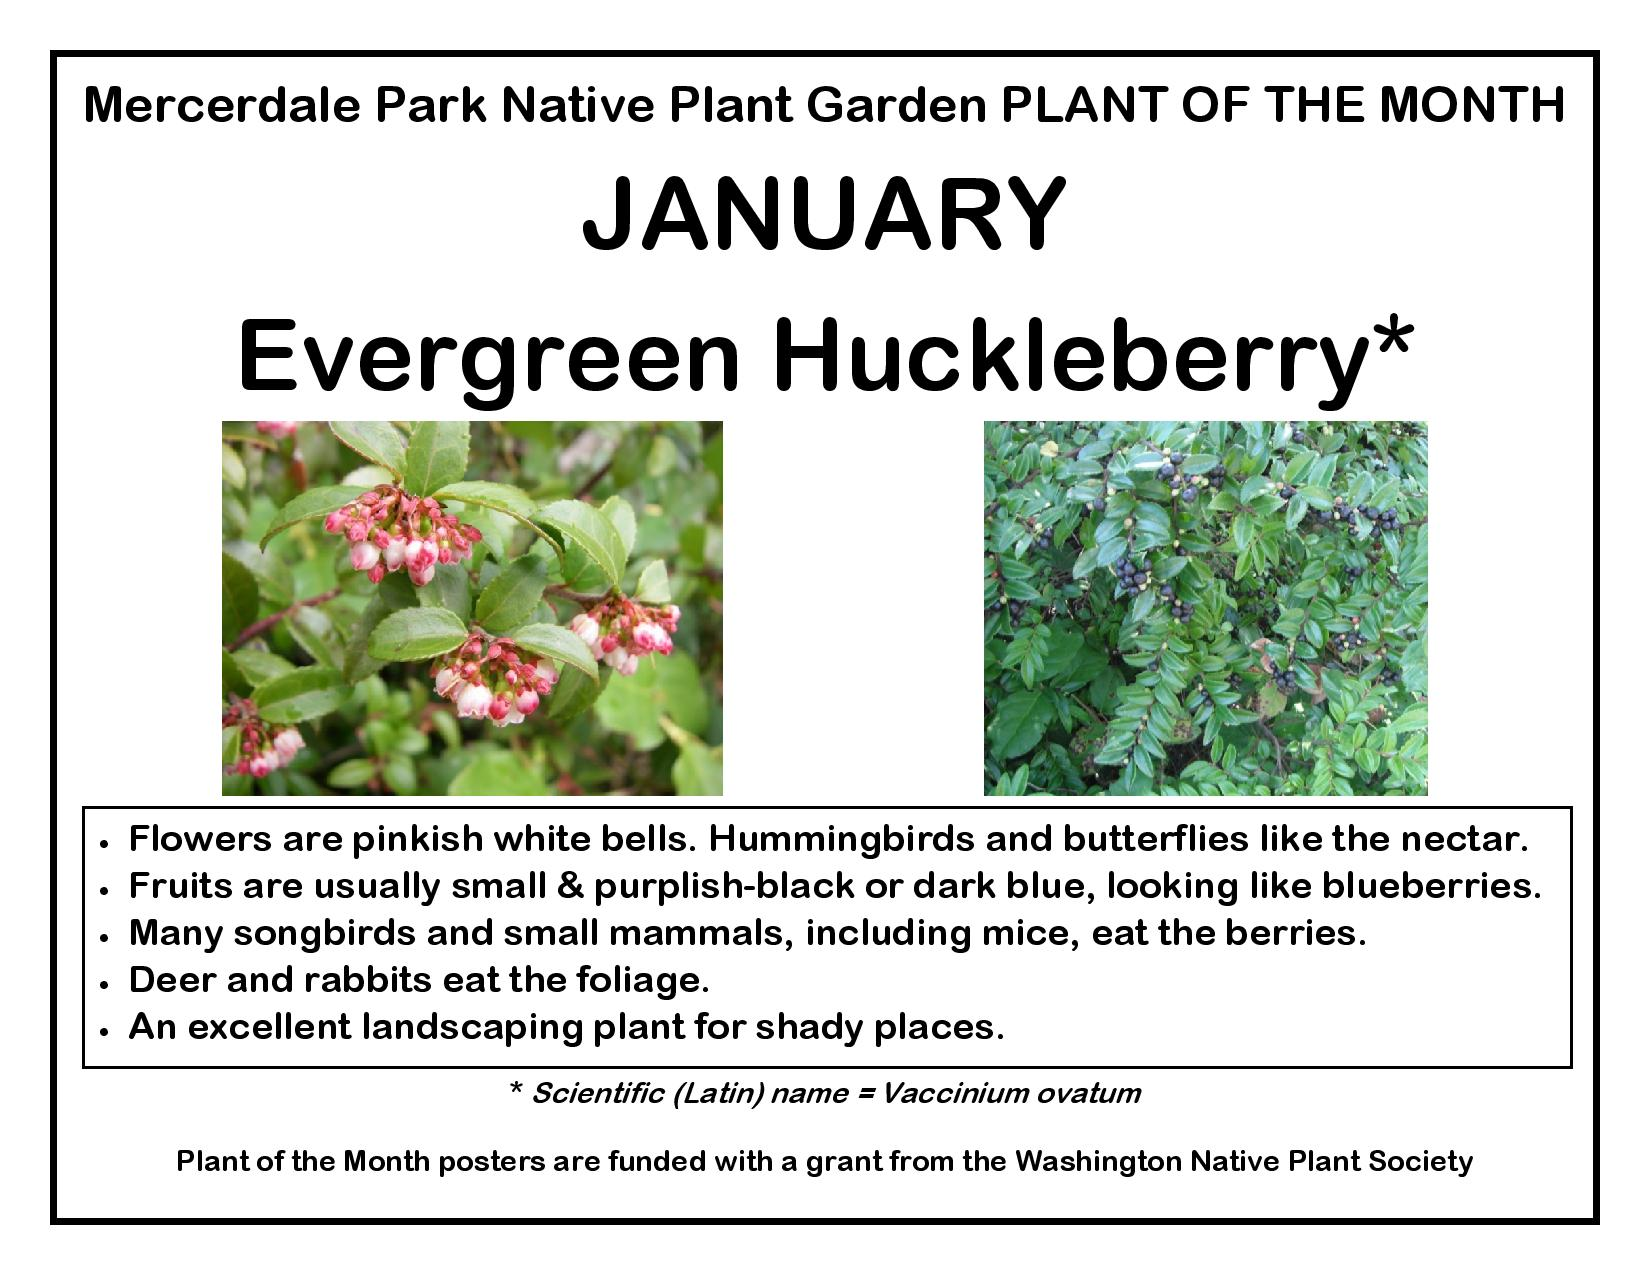 PLANT OF THE MONTH January Evergreen Huckleberry FINAL-page-001.jpg